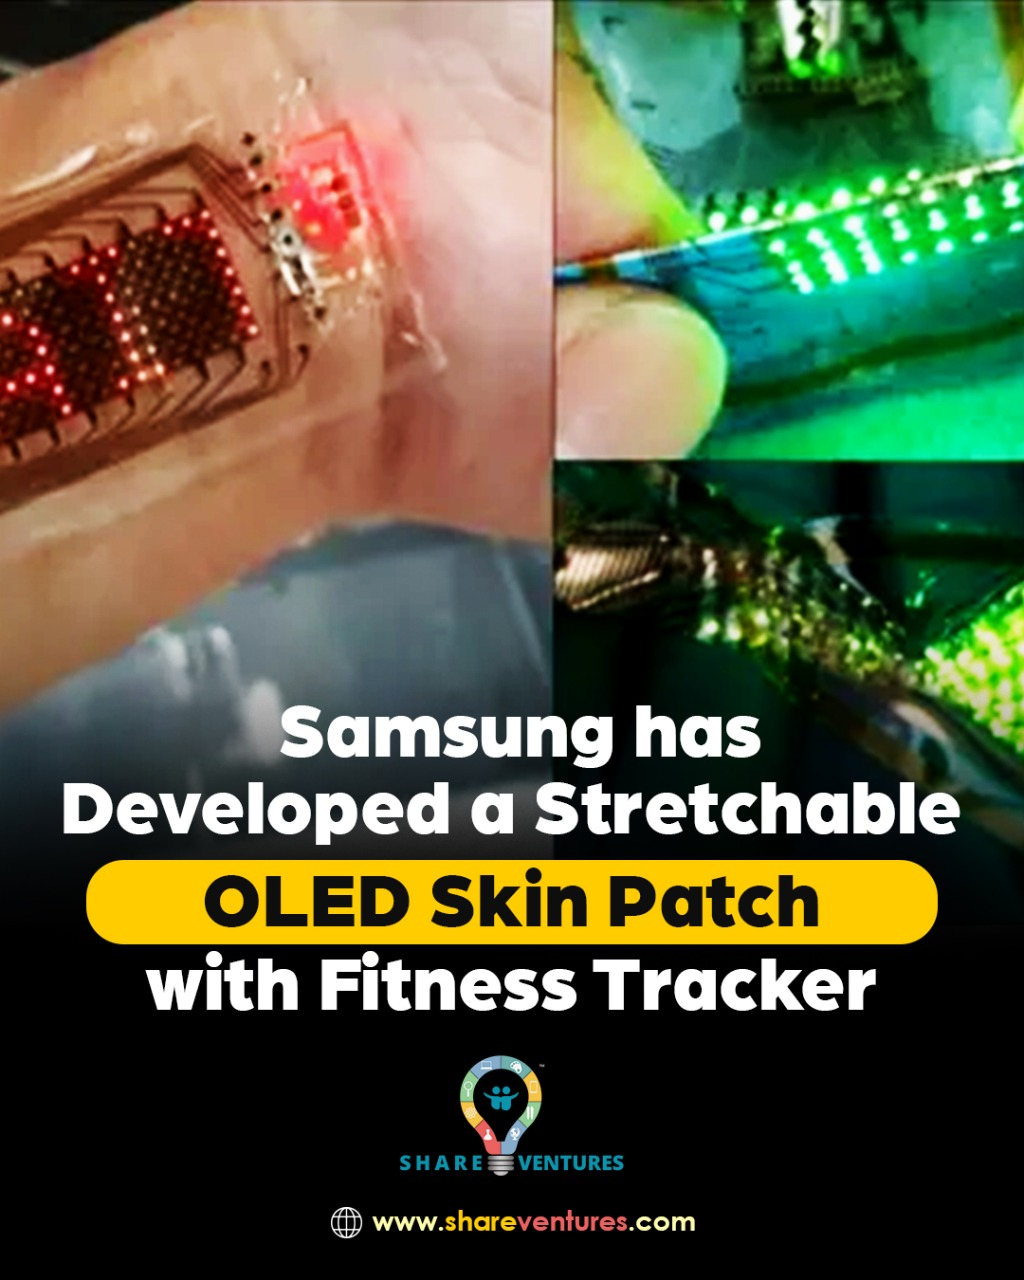 Samsung showcases a stretchable OLED skinPatch